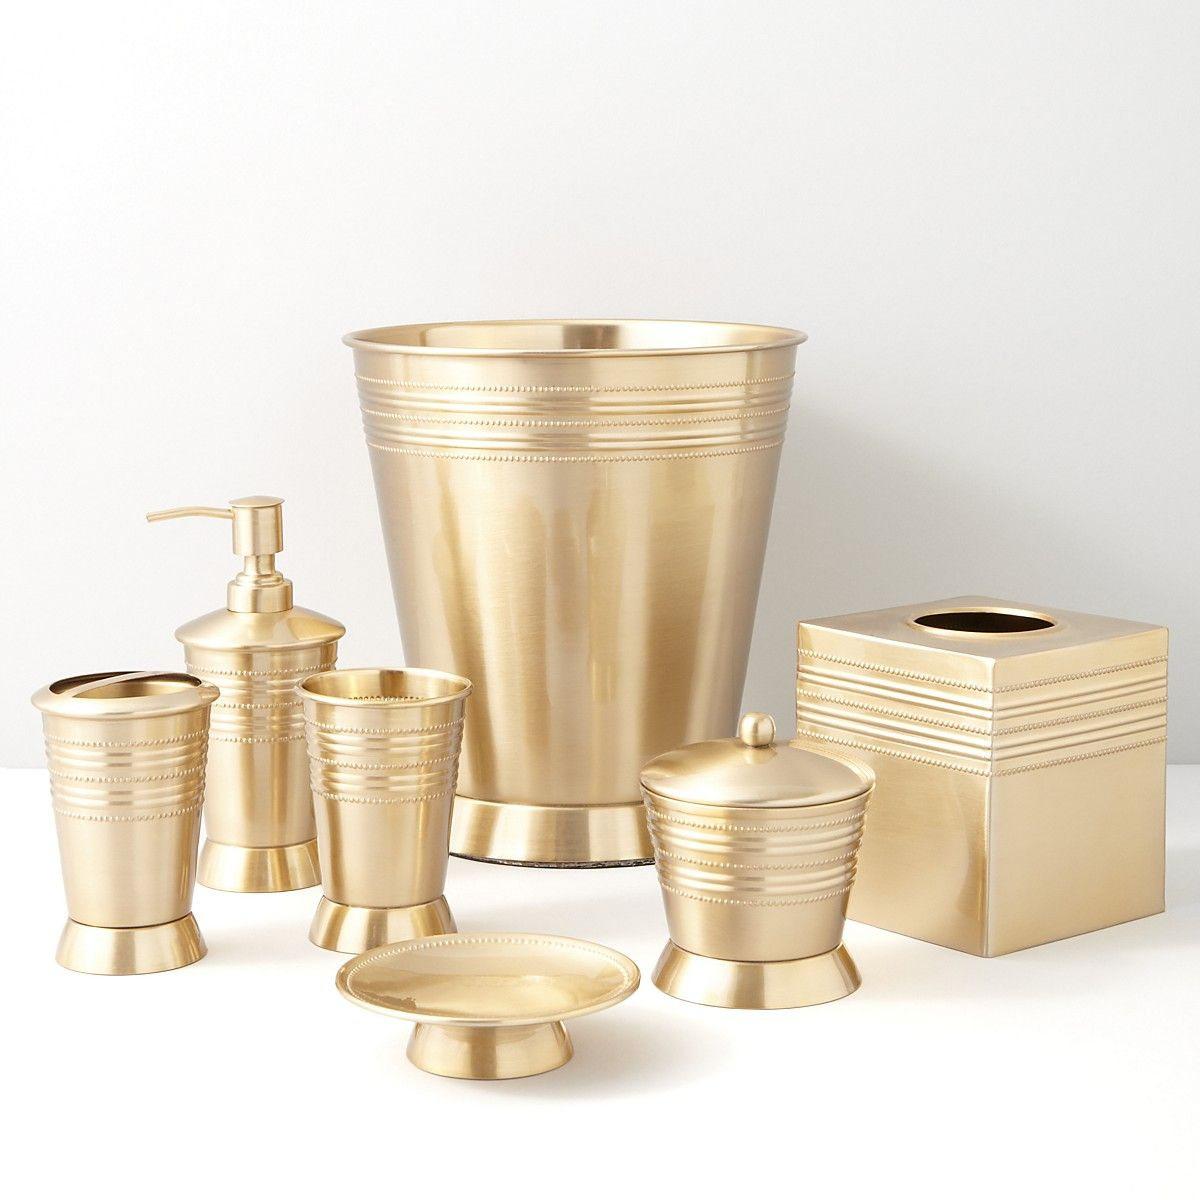 New metallic bead satin brass by paradigm trends bath for Gold bathroom wastebasket